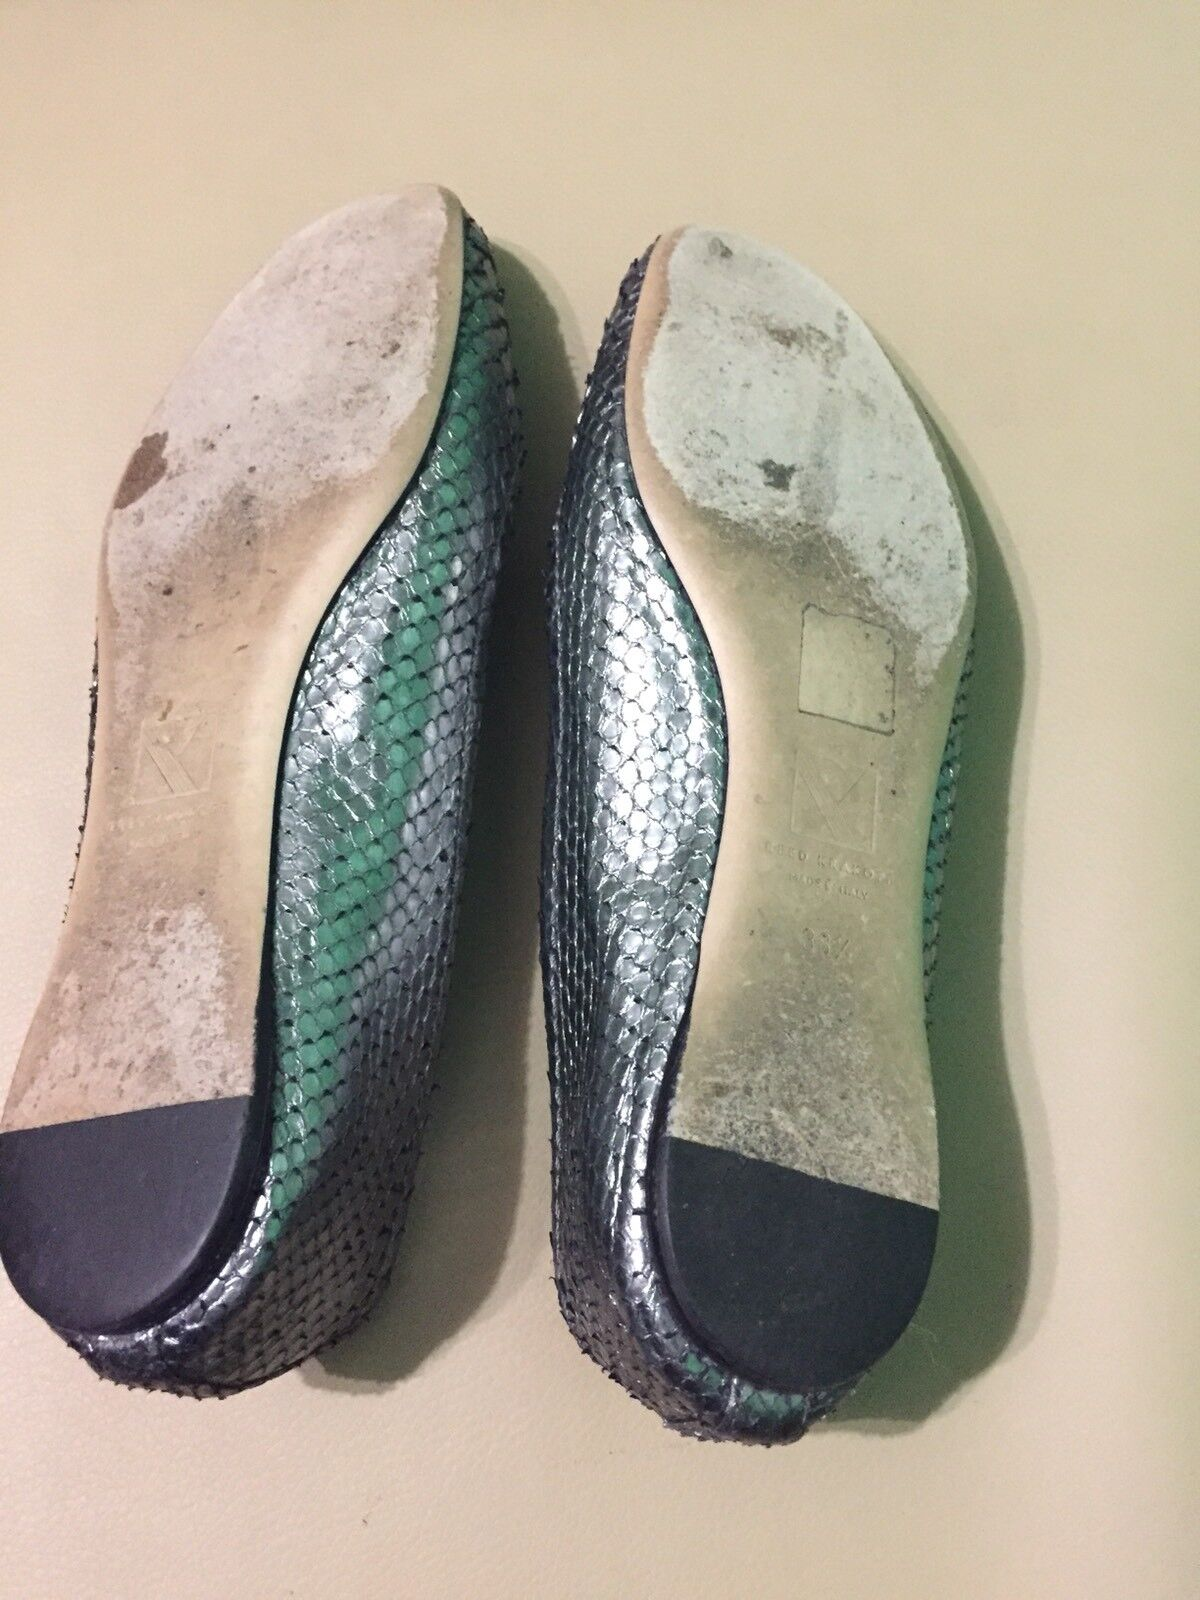 Reed Krakoff Womens 38.5 Metallic Round Toe Flat shoes shoes shoes made In  d6d6f3